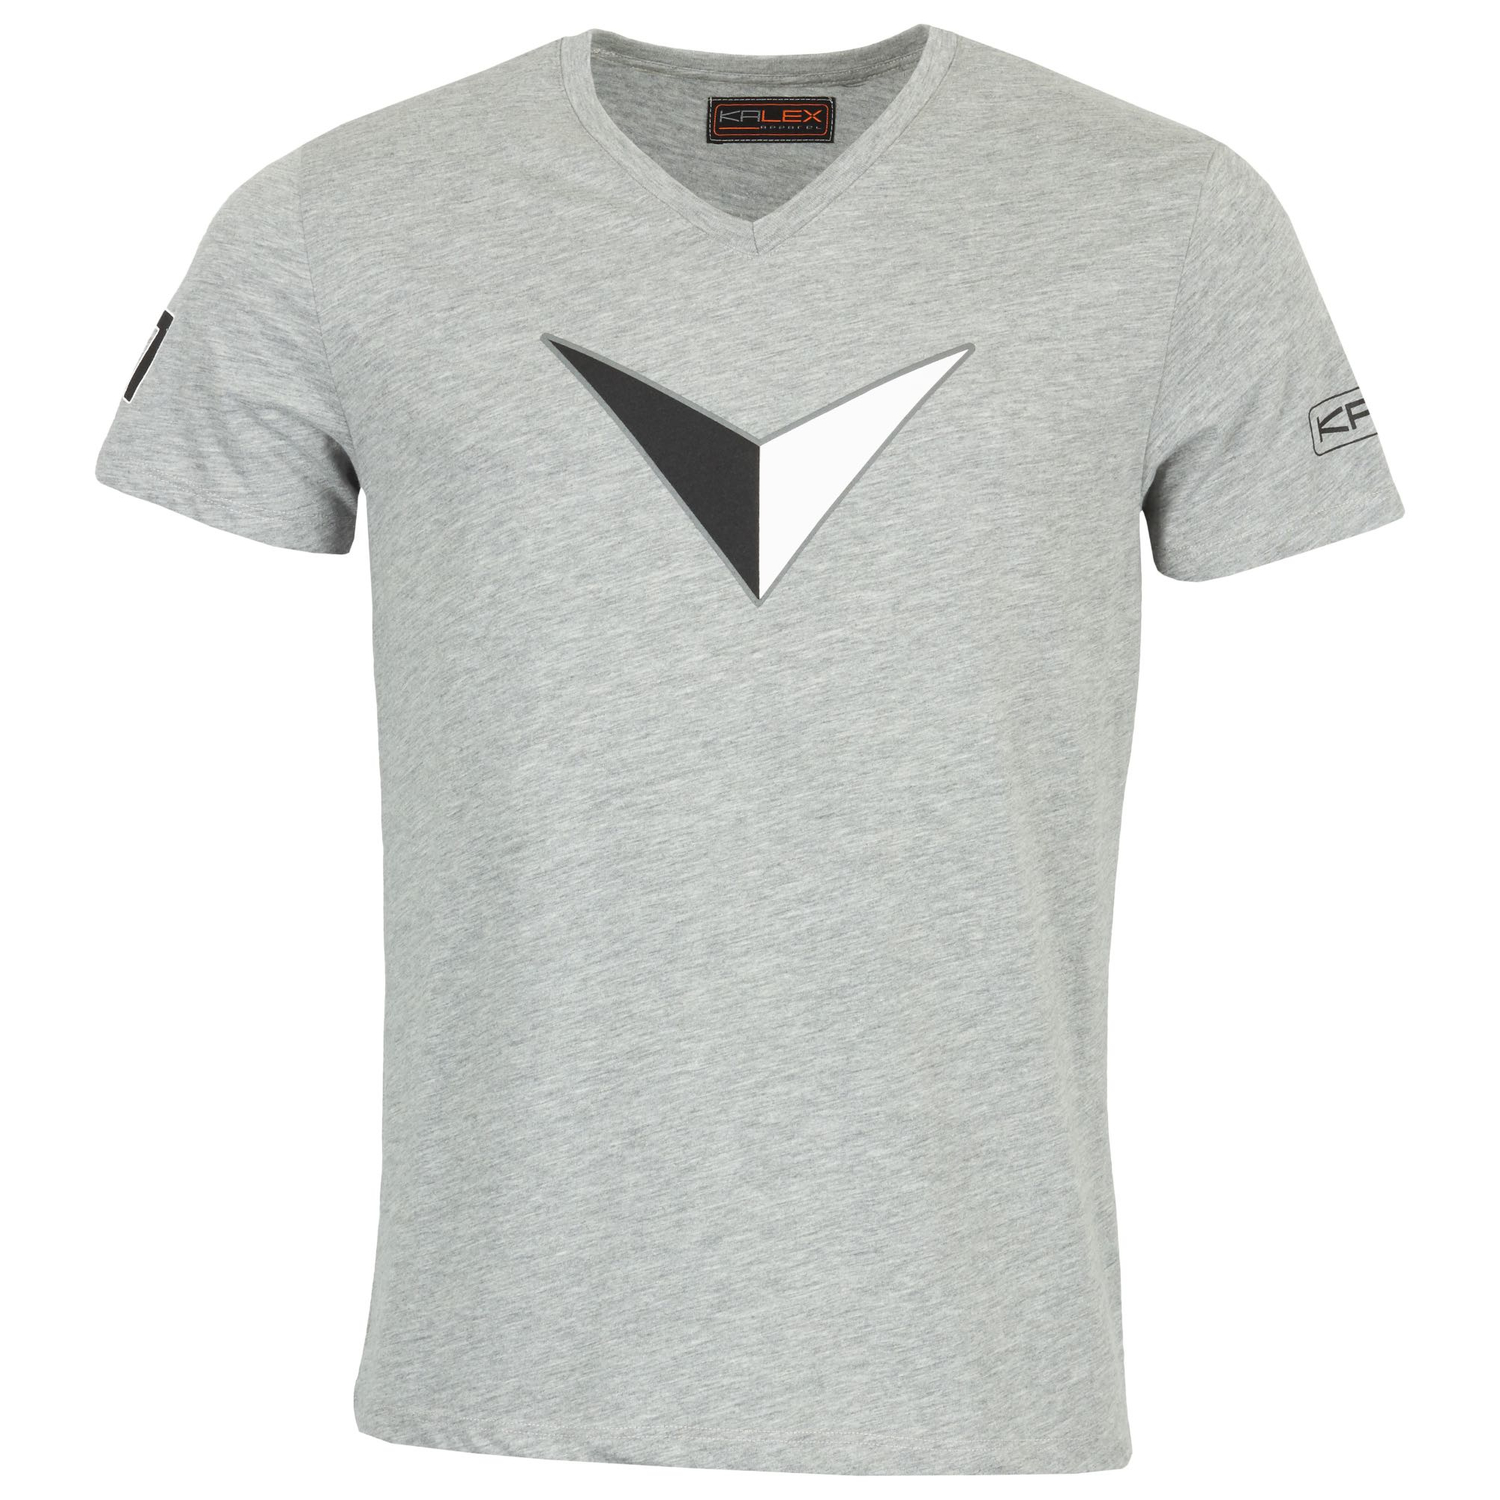 T-SHIRT BIG V DRUCK GRAU MELANGE  XL